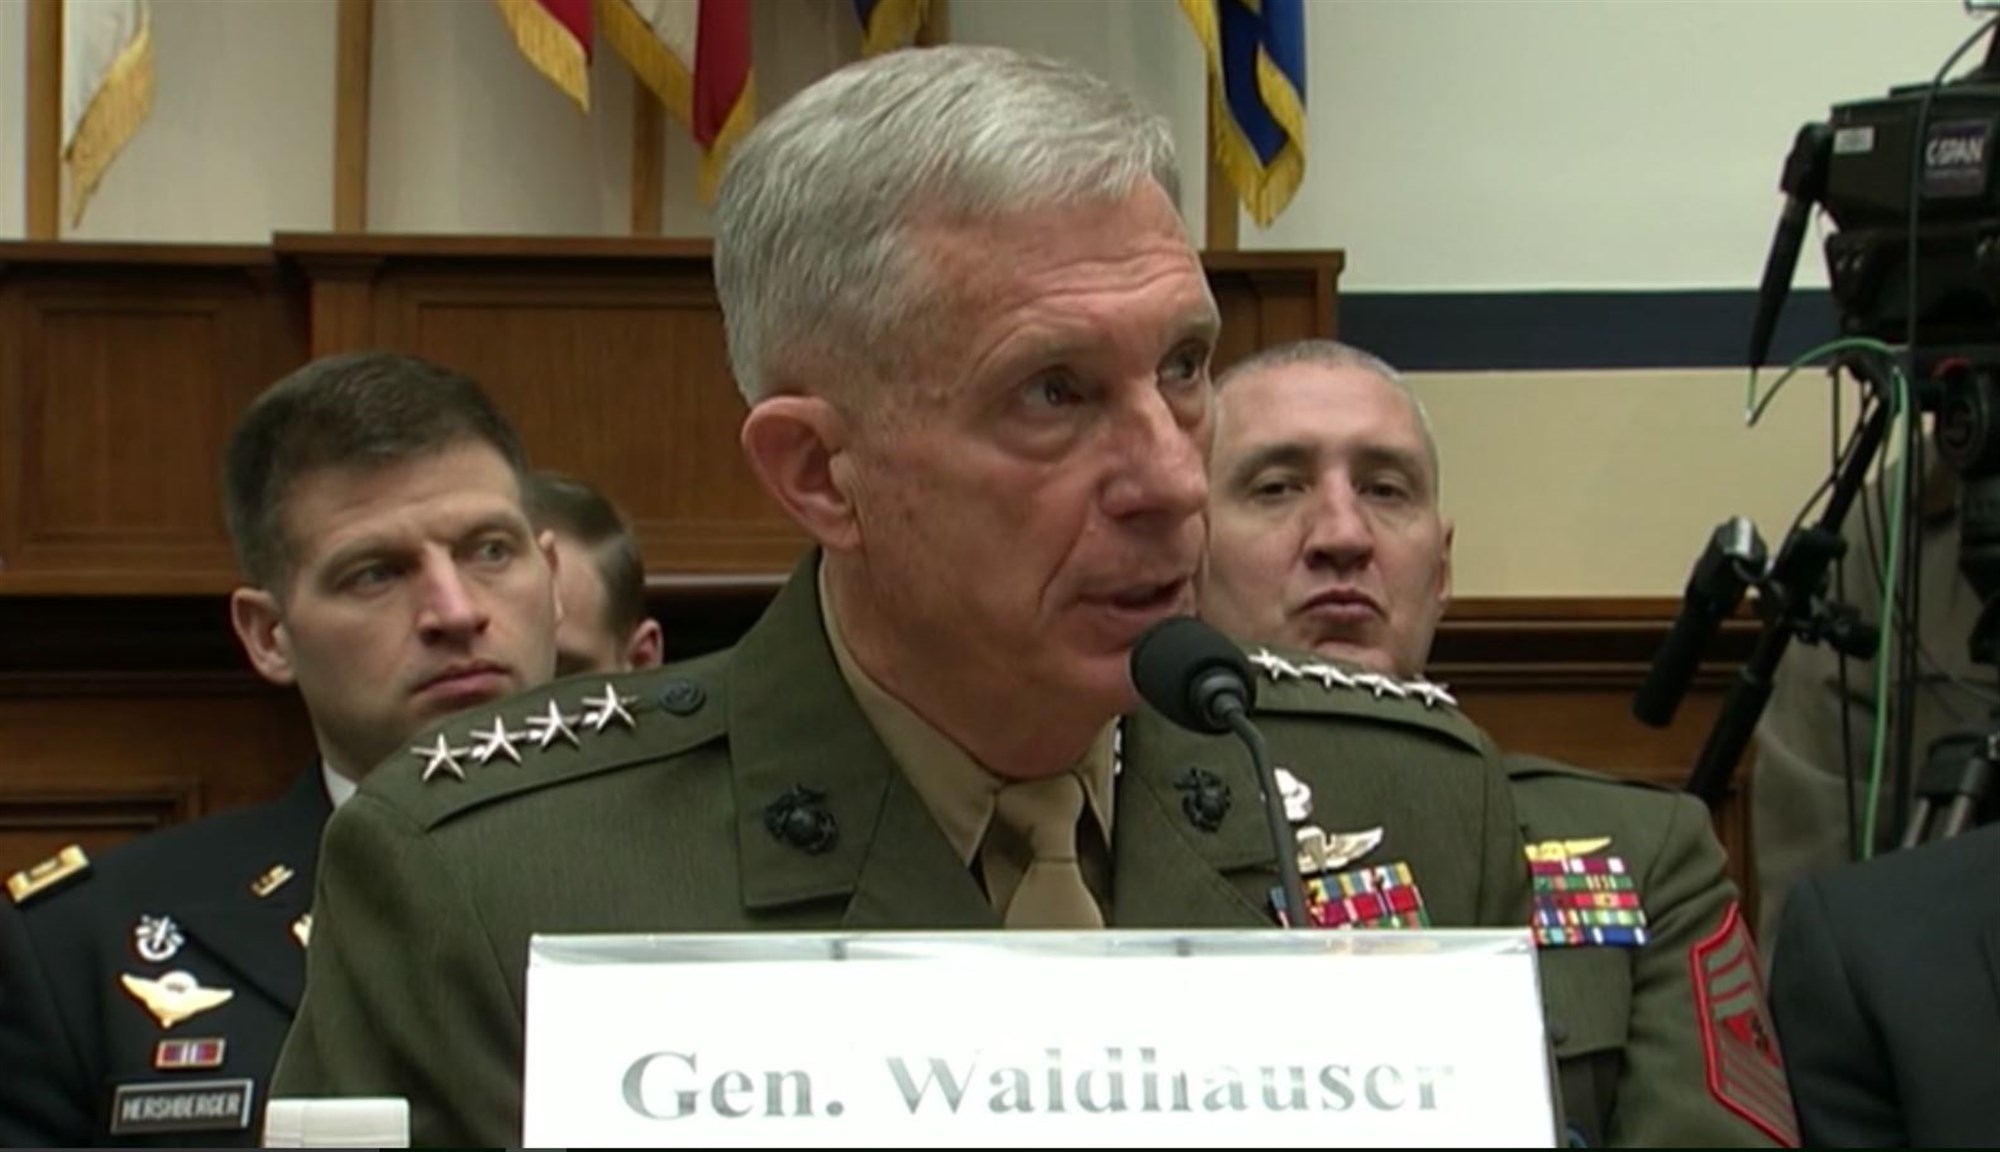 Gen. Thomas D. Waldhauser, Commander, U.S. Africa Command, appears before the House Armed Services Committee to deliver the 2018 U.S. Africa Command Posture Statement, March 6, 2018, Washington, D.C.